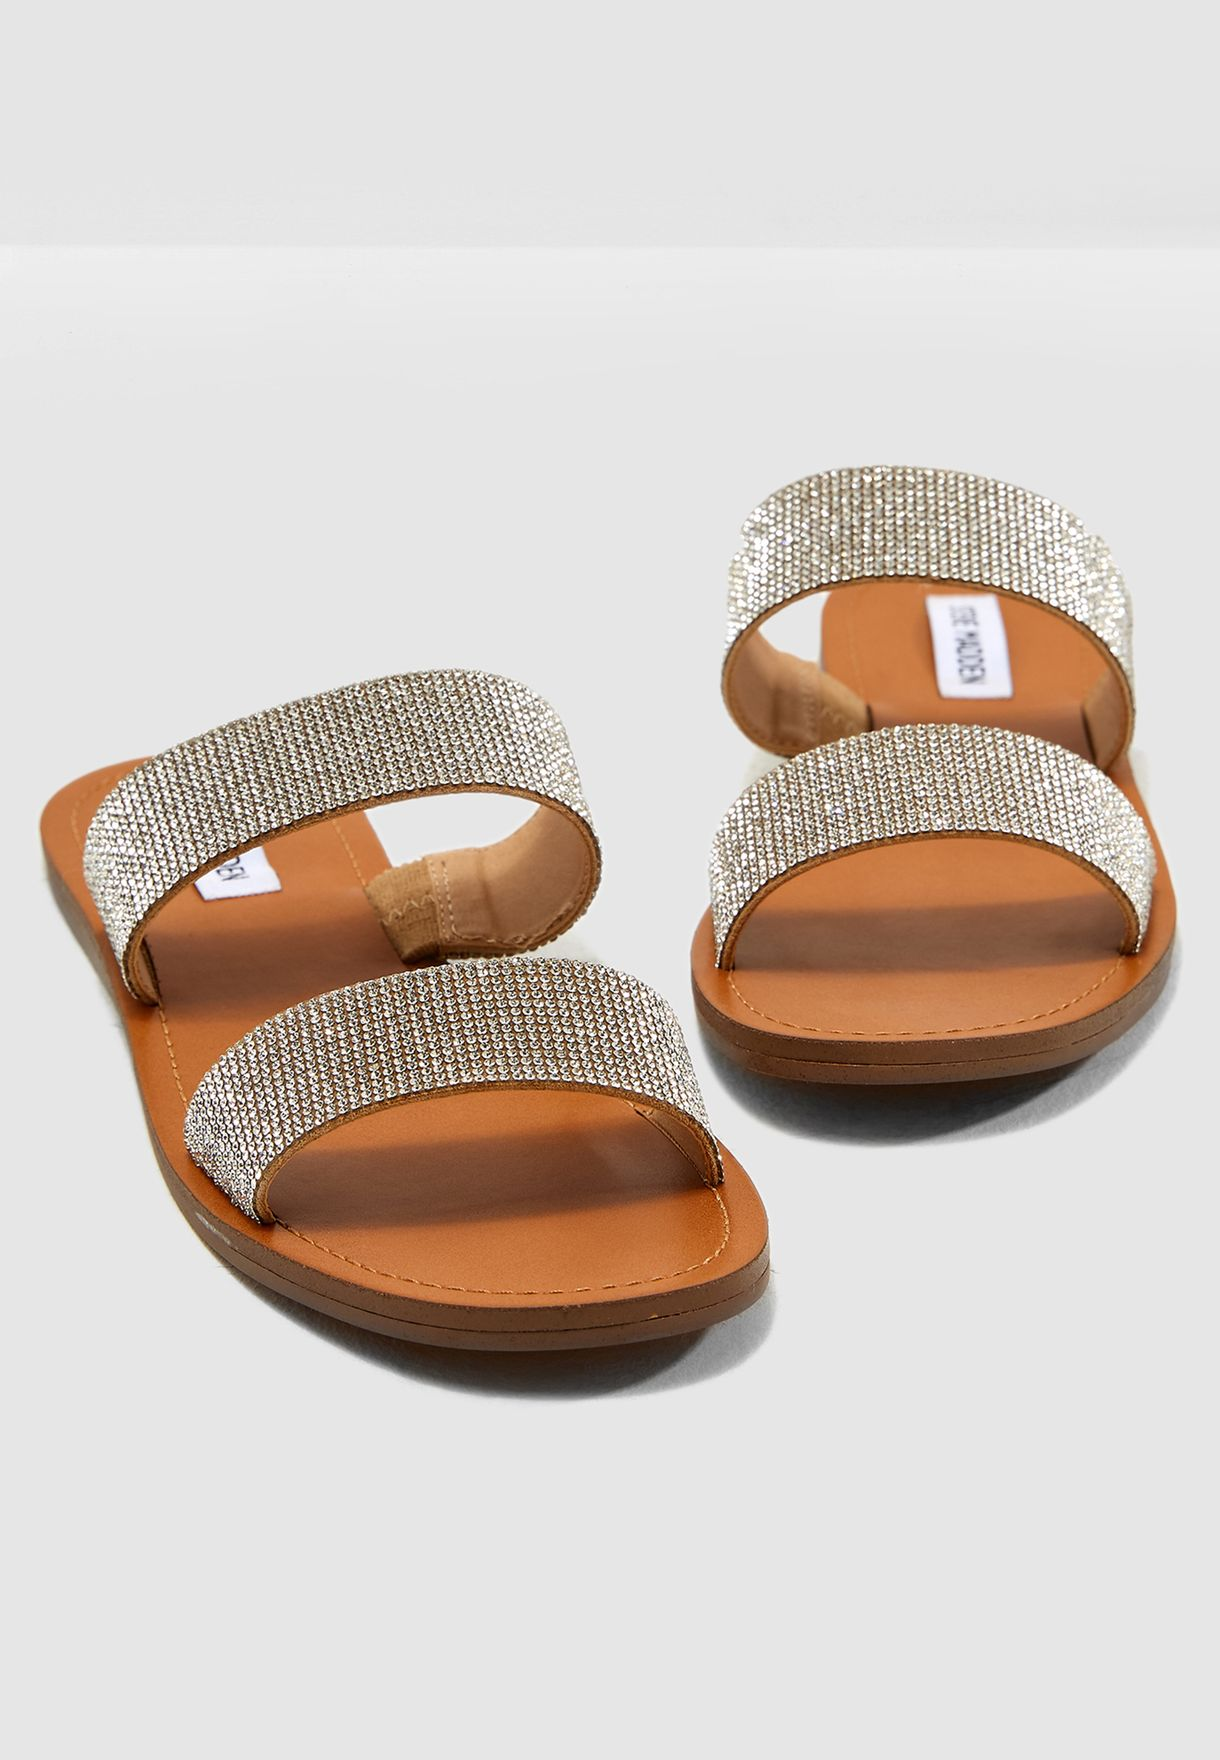 59a4333d3 Shop Steve Madden browns Rage Flat Sandal RAGE for Women in Saudi ...